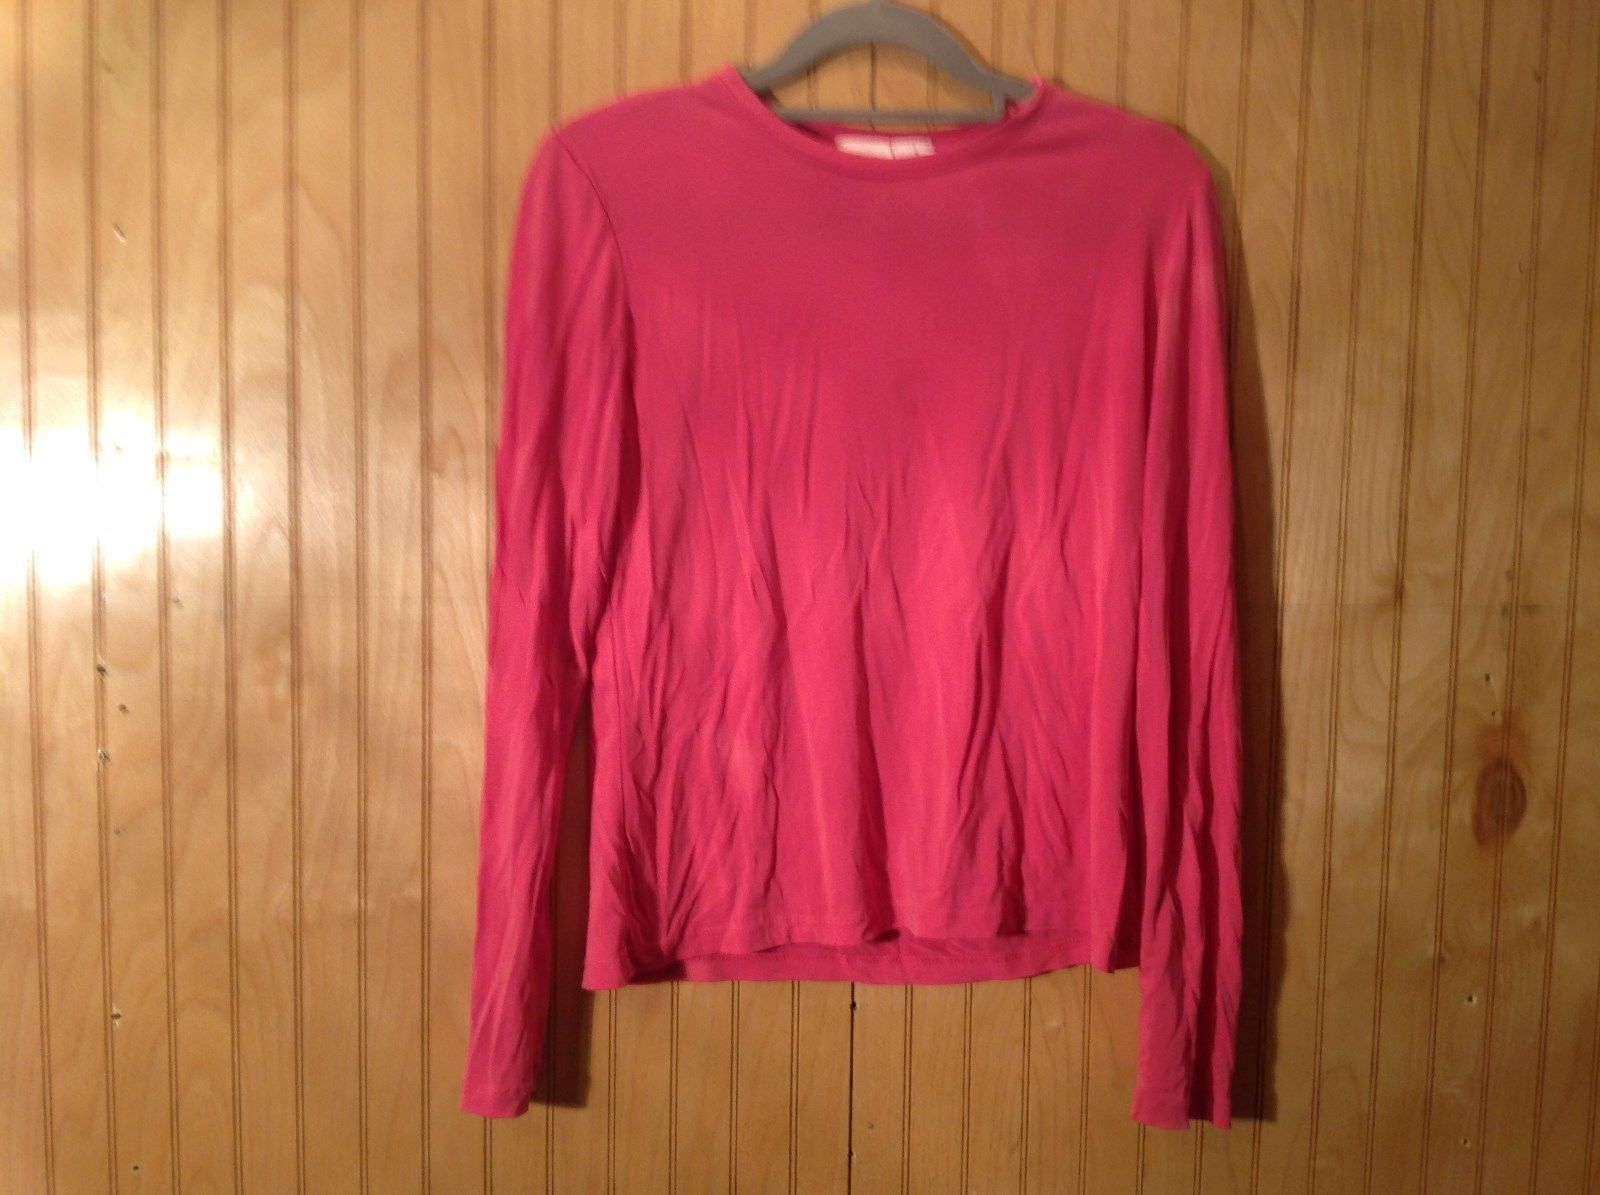 Pink Stretch Isaac Mizrahi Long Sleeve Top Size Small Made in USA